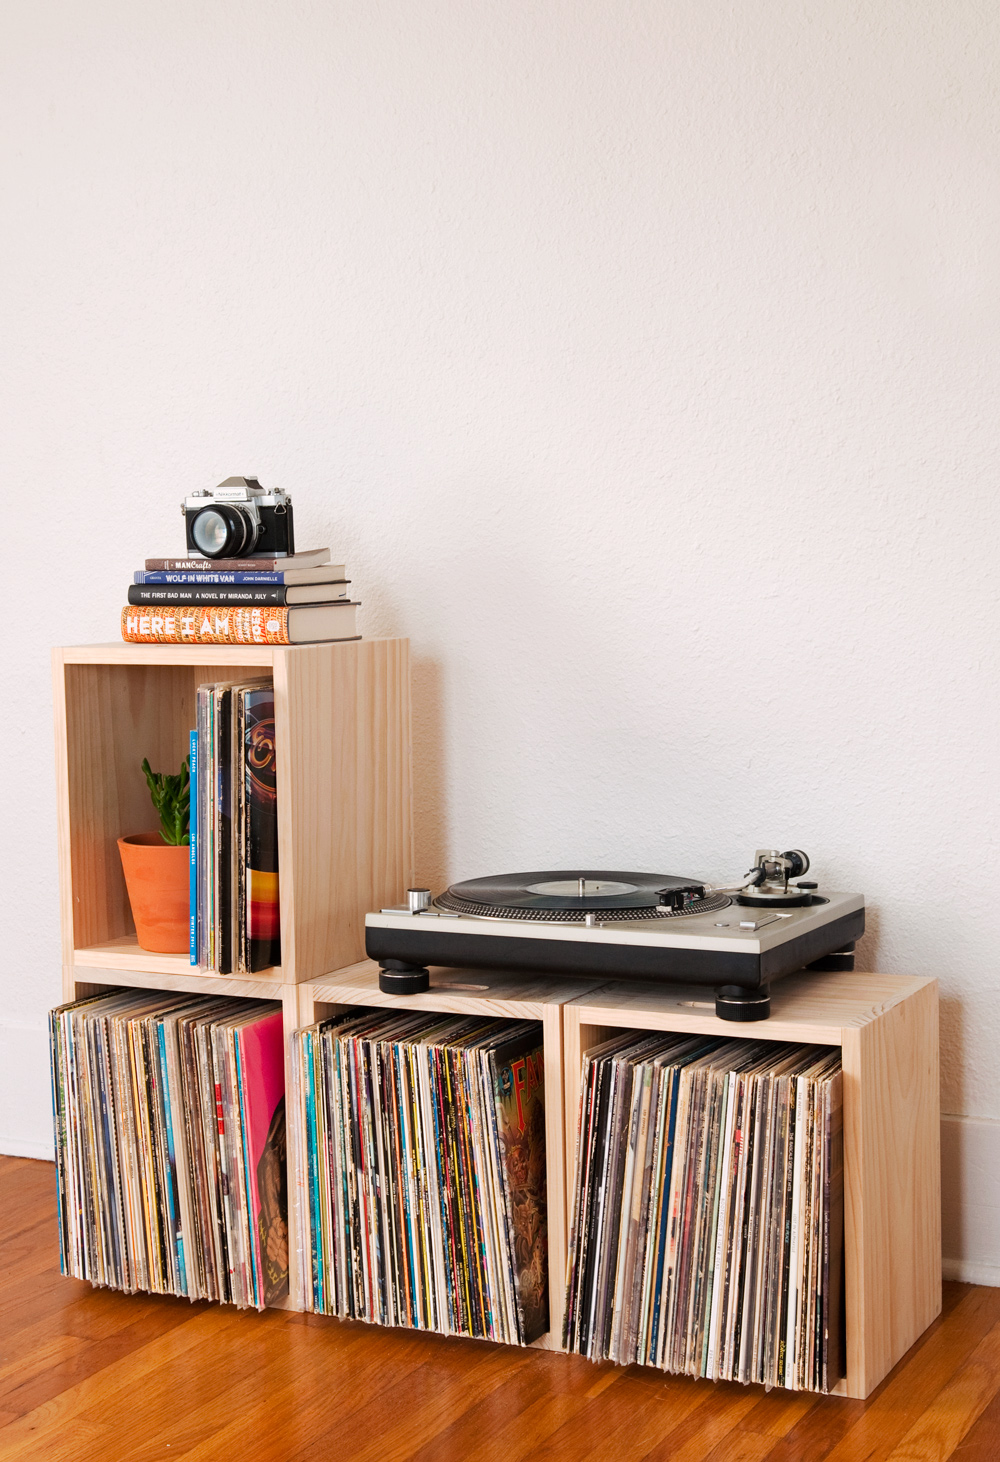 How to stacking storage crates vinyl records feature 2original